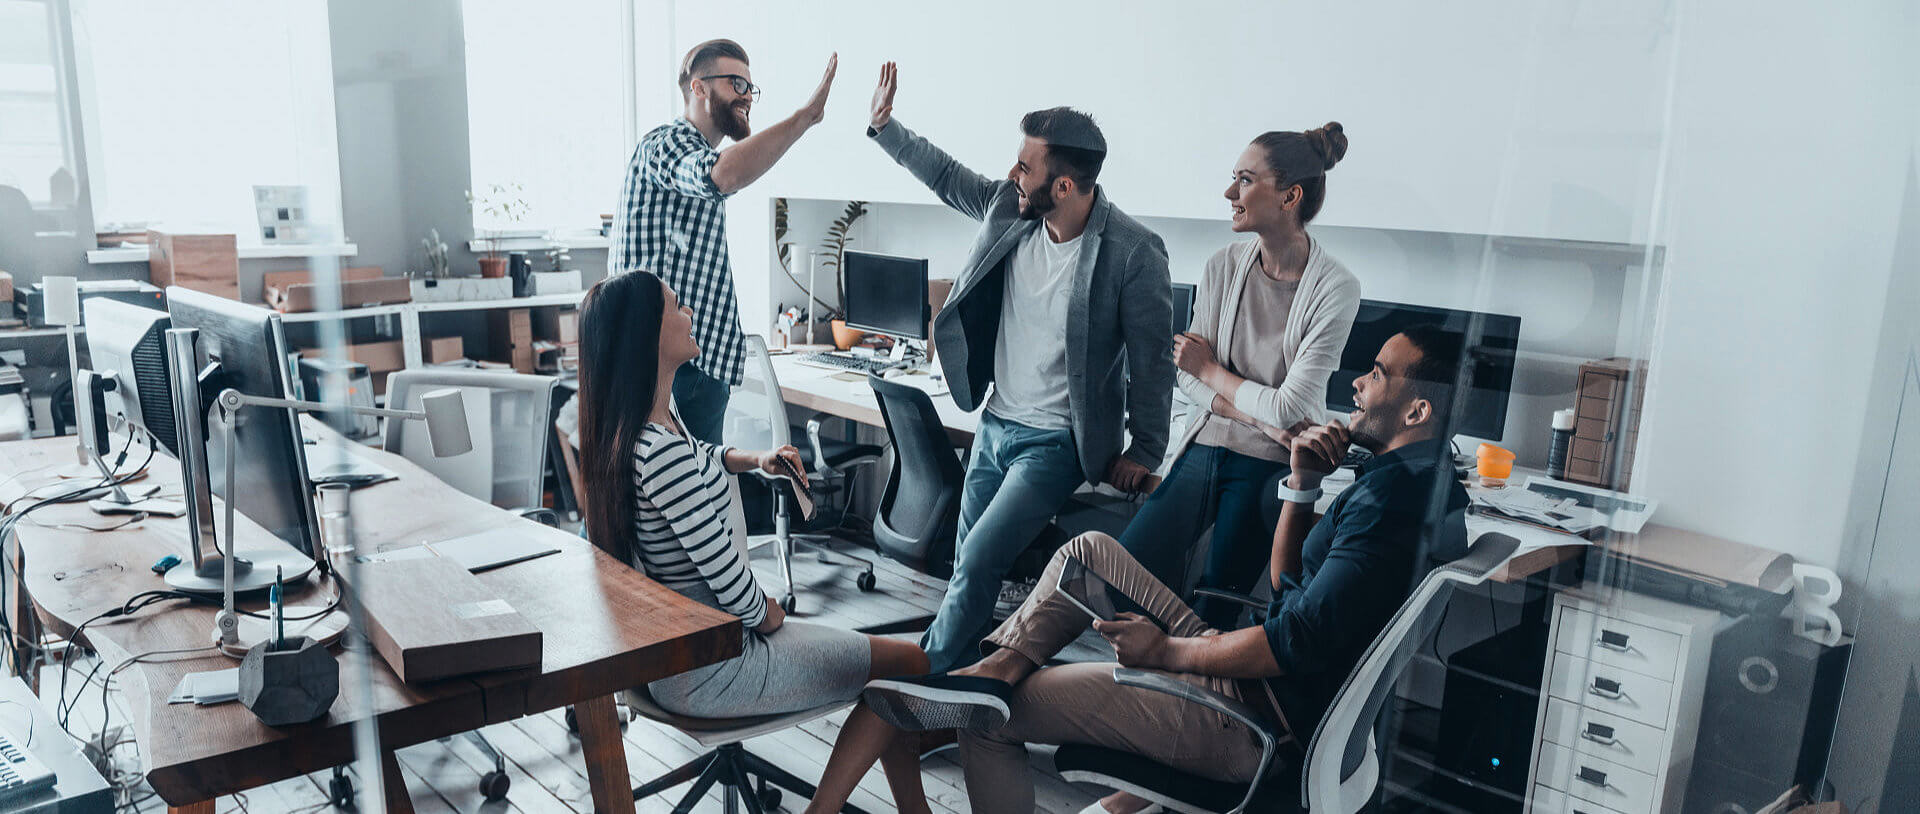 group of business people giving high five